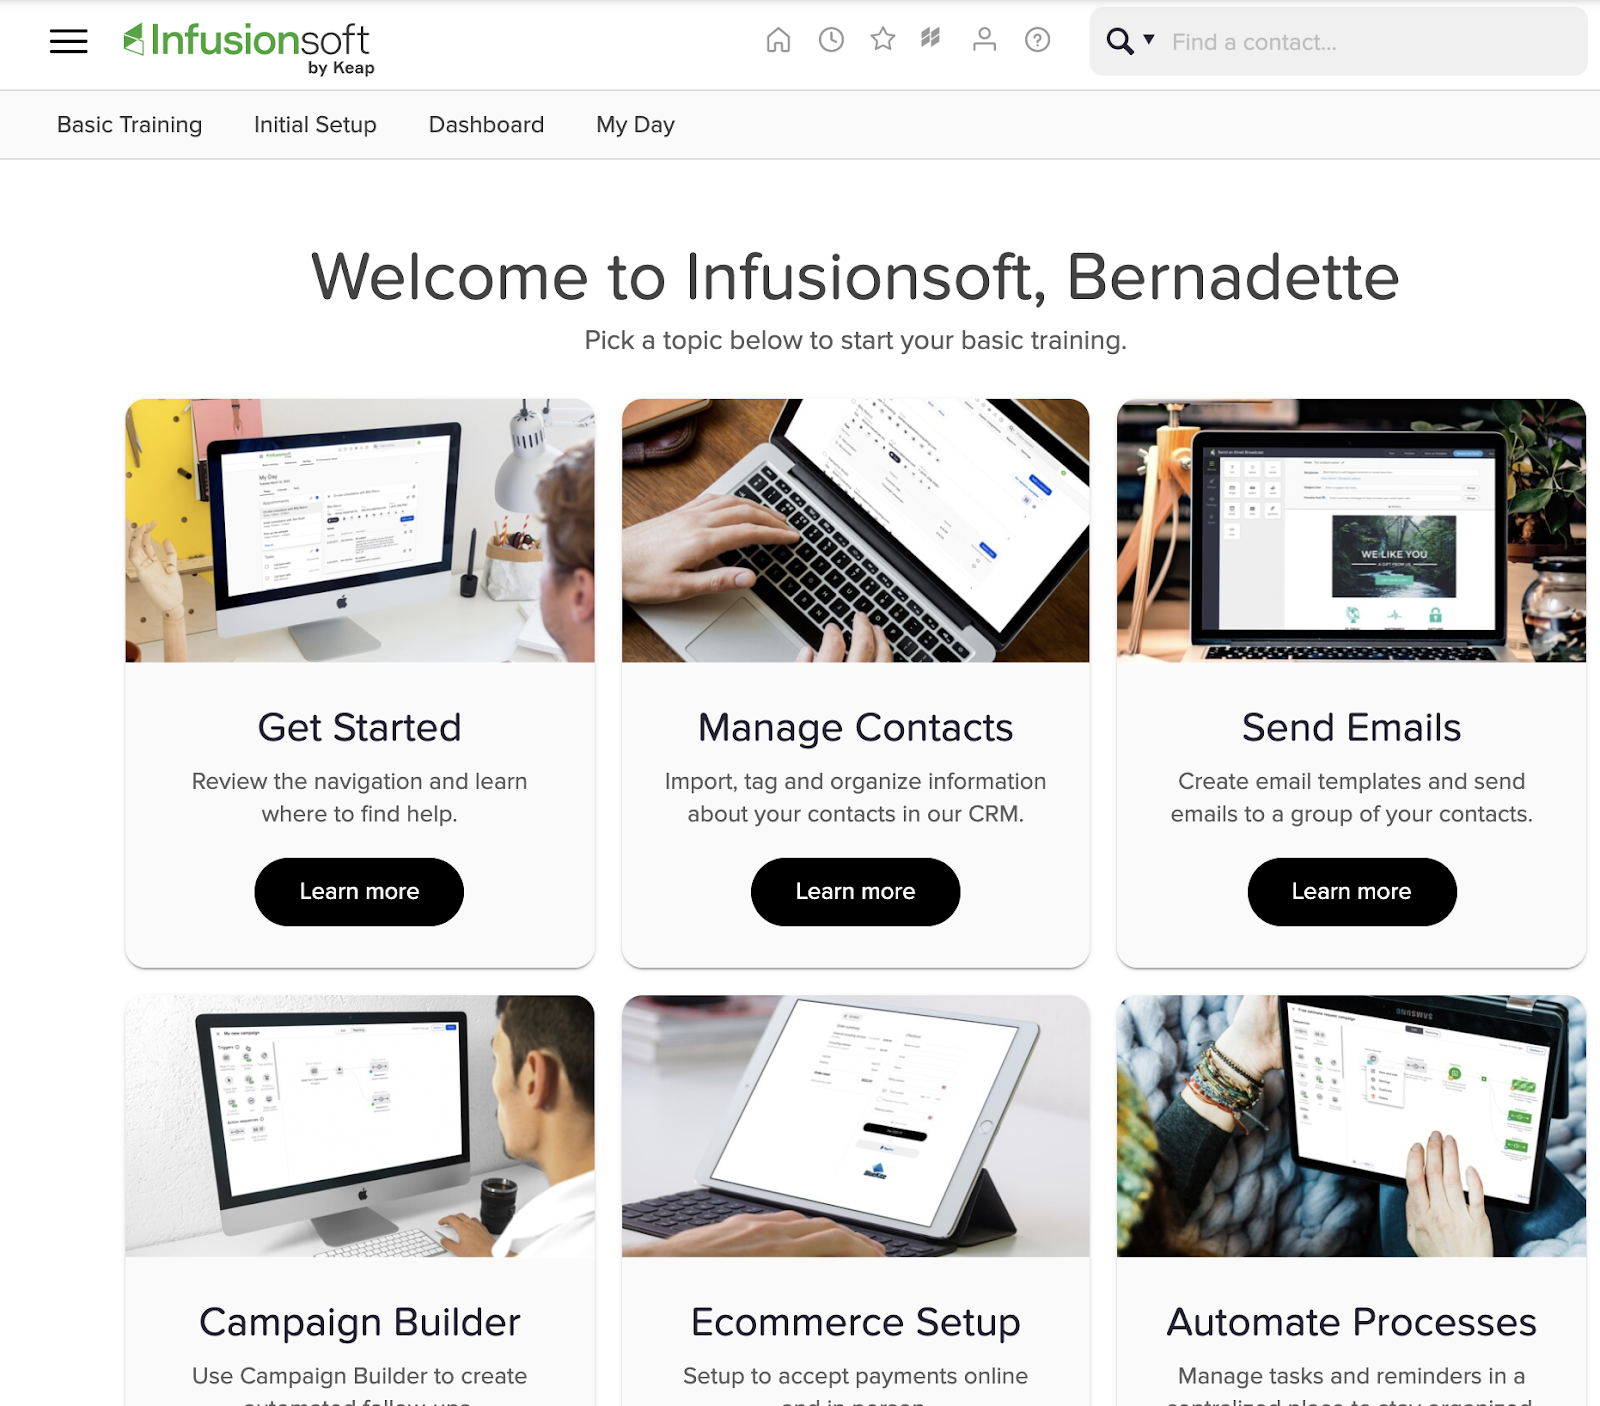 Infusionsoft welcome screen